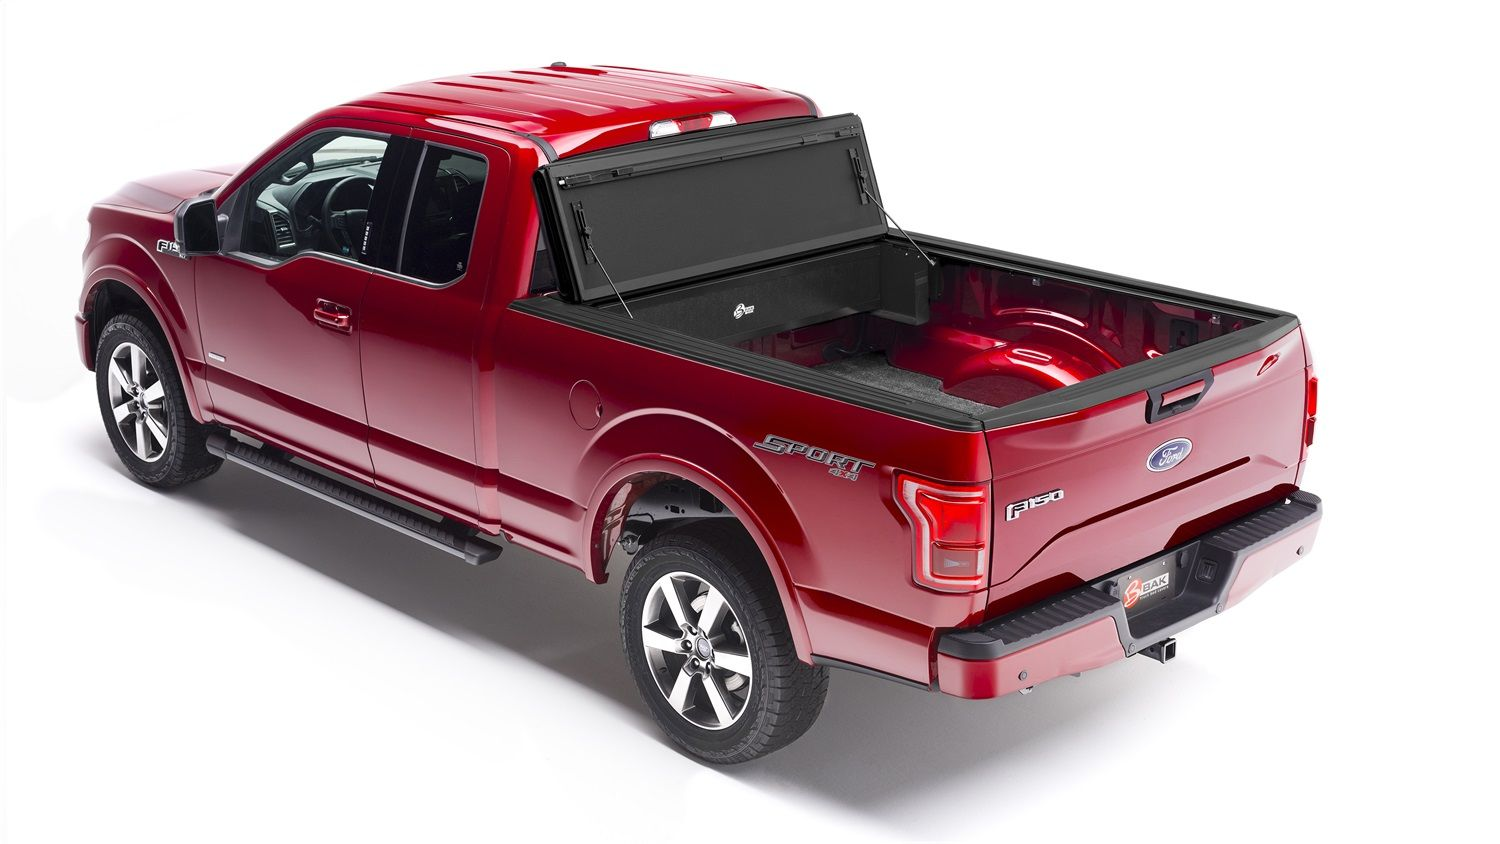 Details about BAK Industries 92601 BAKBox 2 Tonneau Cover